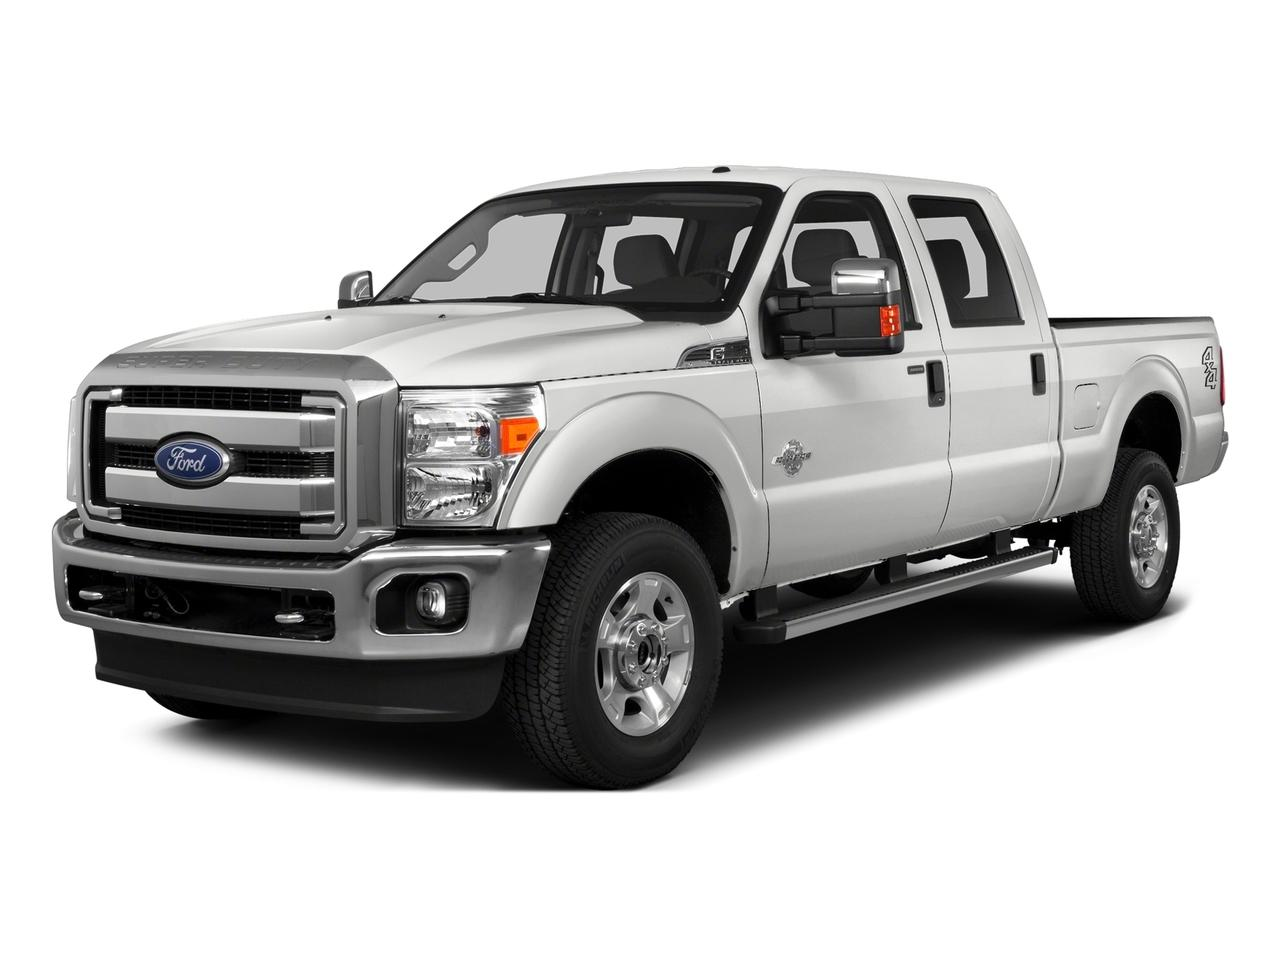 Used 2016 Ford F-350 Super Duty XLT with VIN 1FT8W3BT5GEC03375 for sale in Worthington, Minnesota